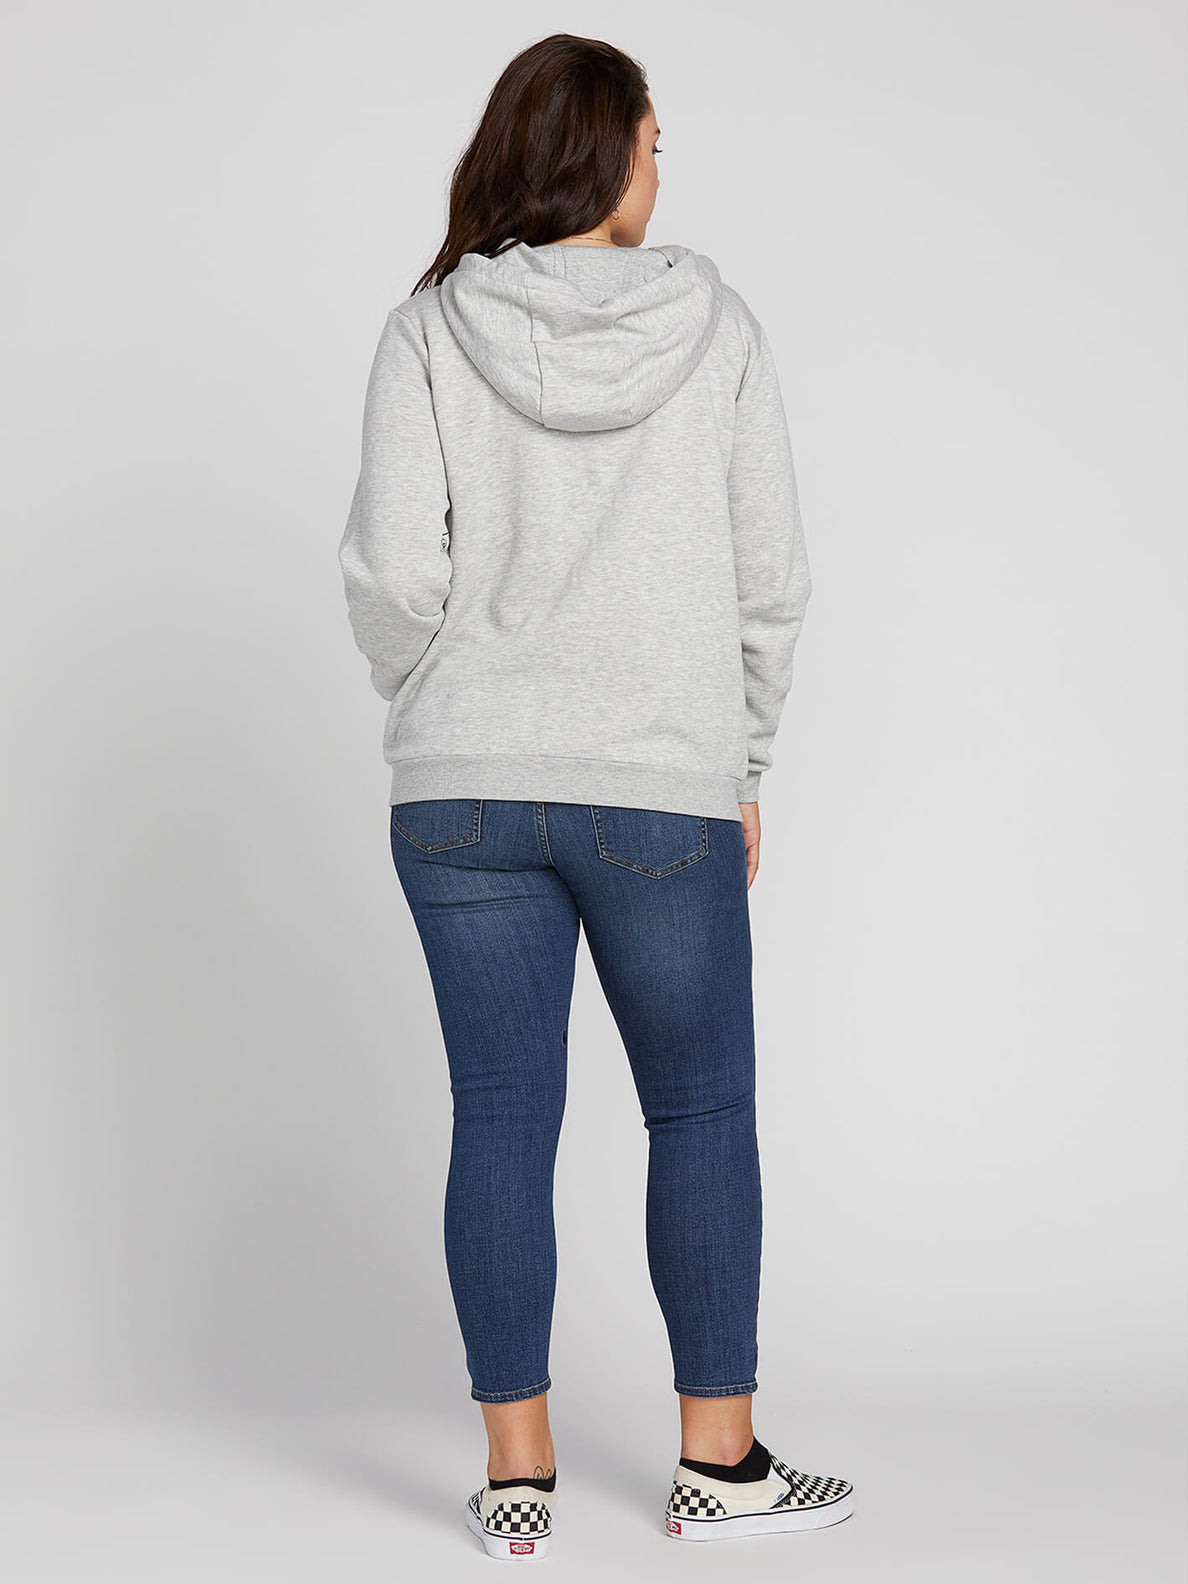 Walk On By High Neck In Heather Grey, Back View